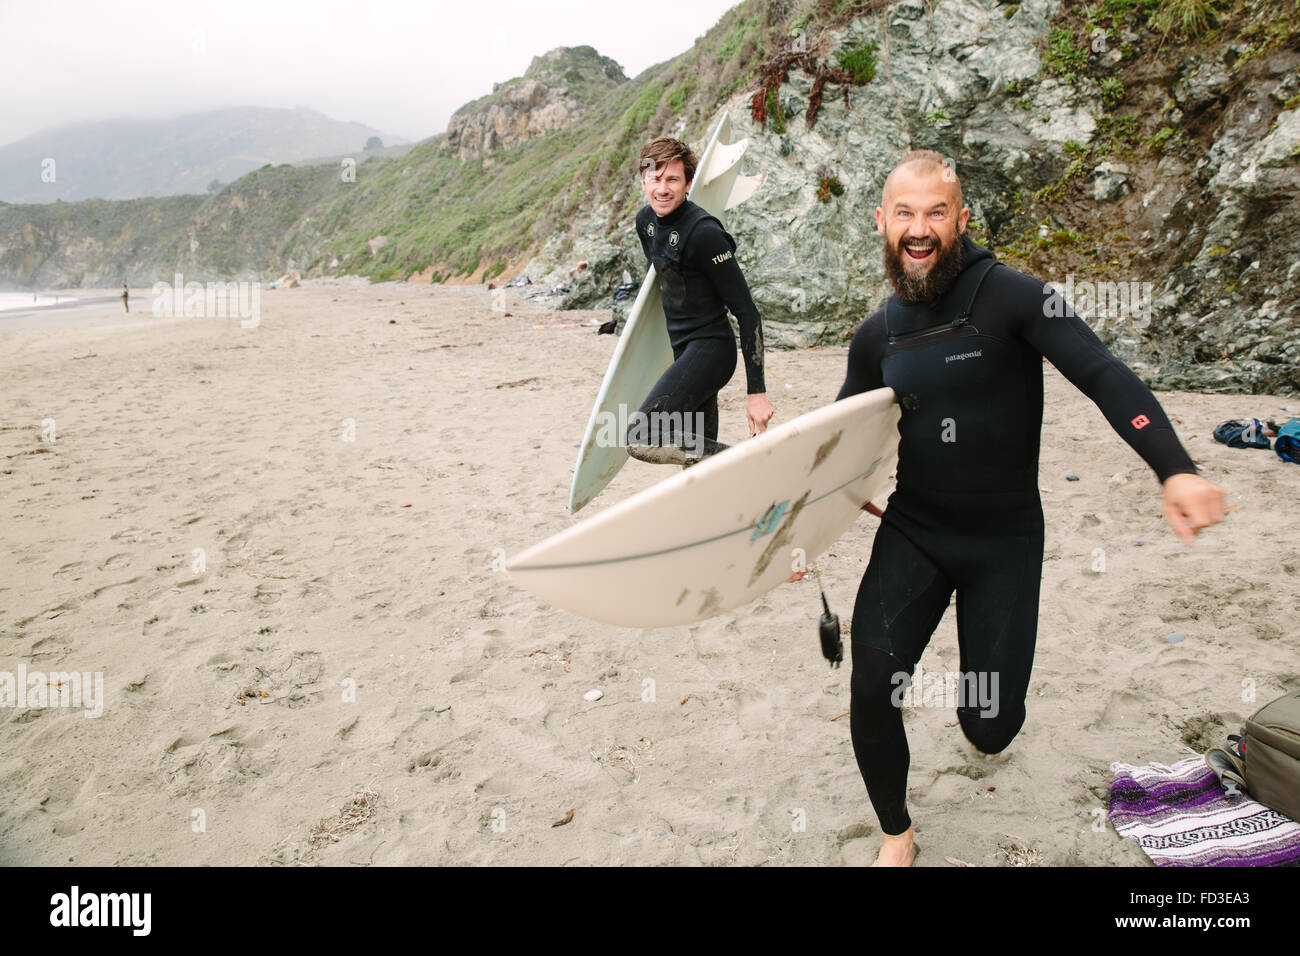 Two surfers goof around on the beach before jumping in the water to catch waves in Big Sur, California. - Stock Image